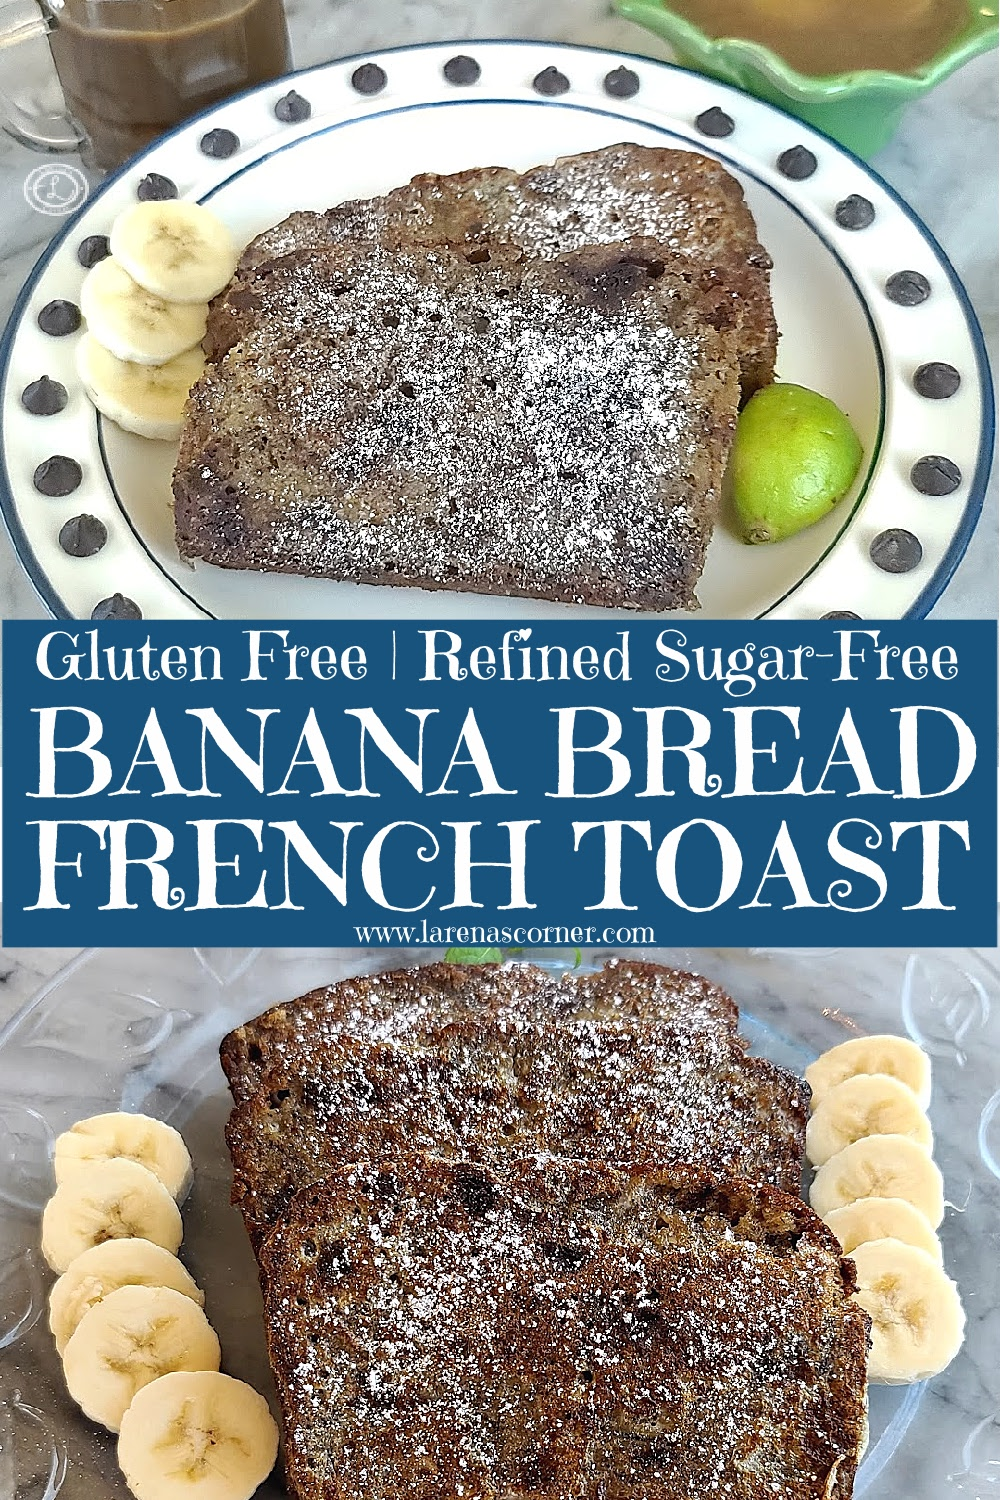 Gluten-Free Banana Bread French Toast on two different plates. One with chocolate chips and one with sliced bananas.